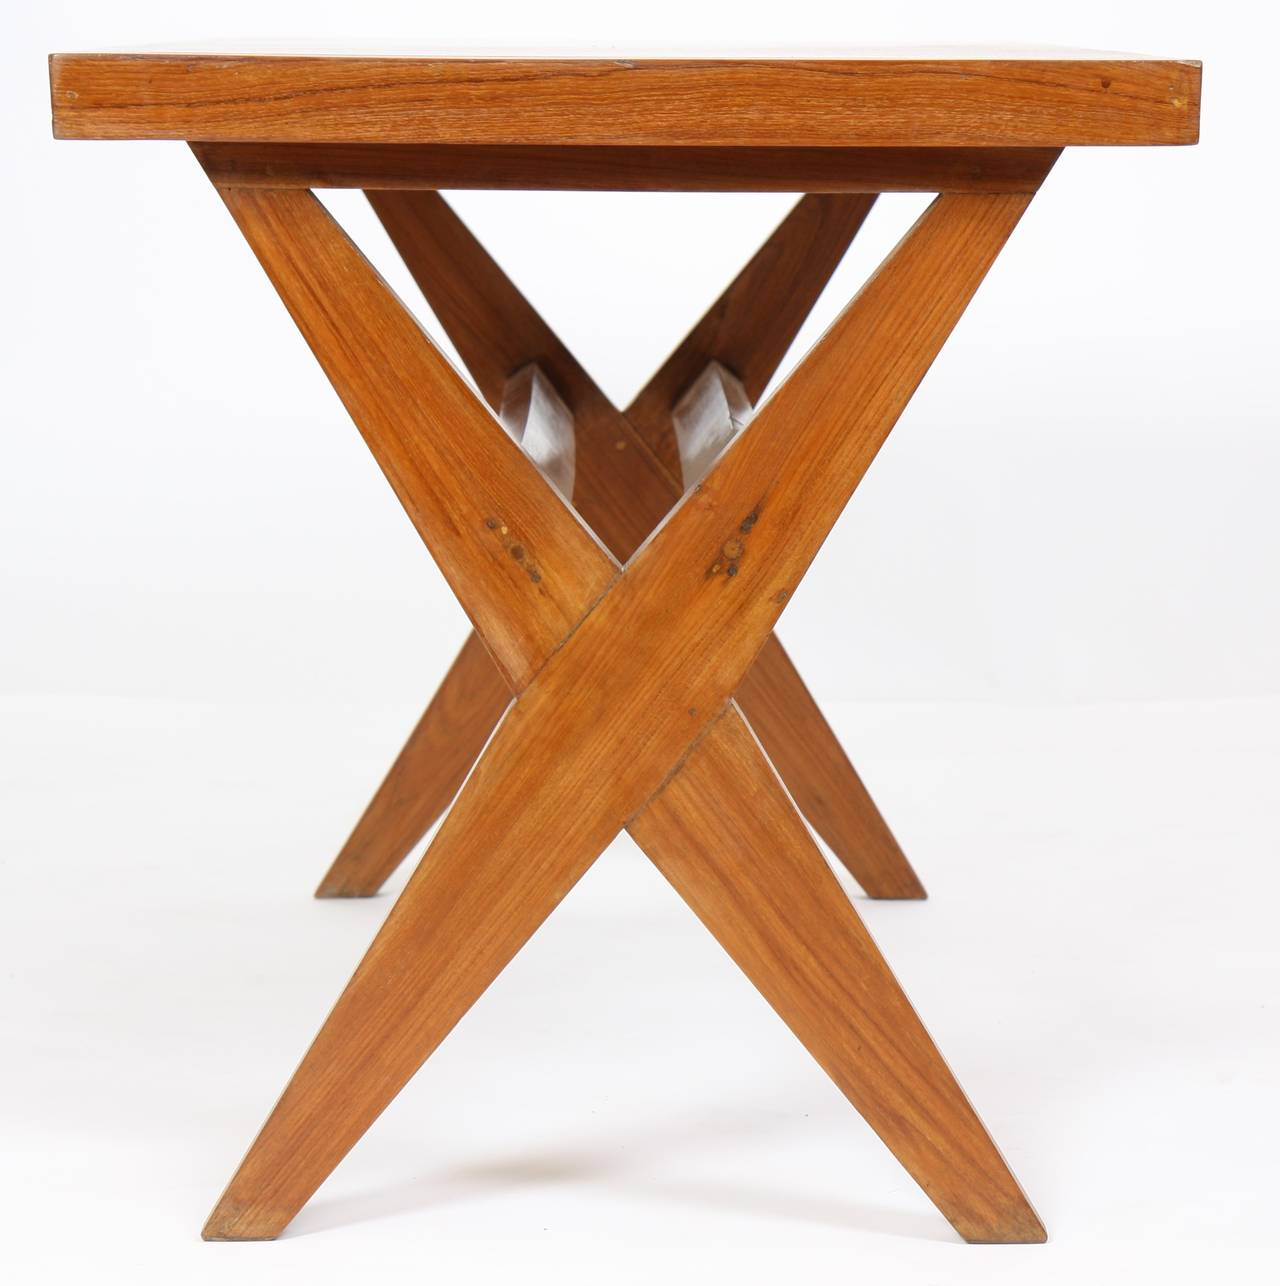 """Pierre Jeanneret (1896-1967) High dining table called : """"Judge lunch table"""" Circa 1954-1955. Solid and veneer teak. Circa 1954-1955. Height: 71 cm - Length: 115 cm - Depth: approx. 66 cm  Origin: Chandigarh, India, private"""